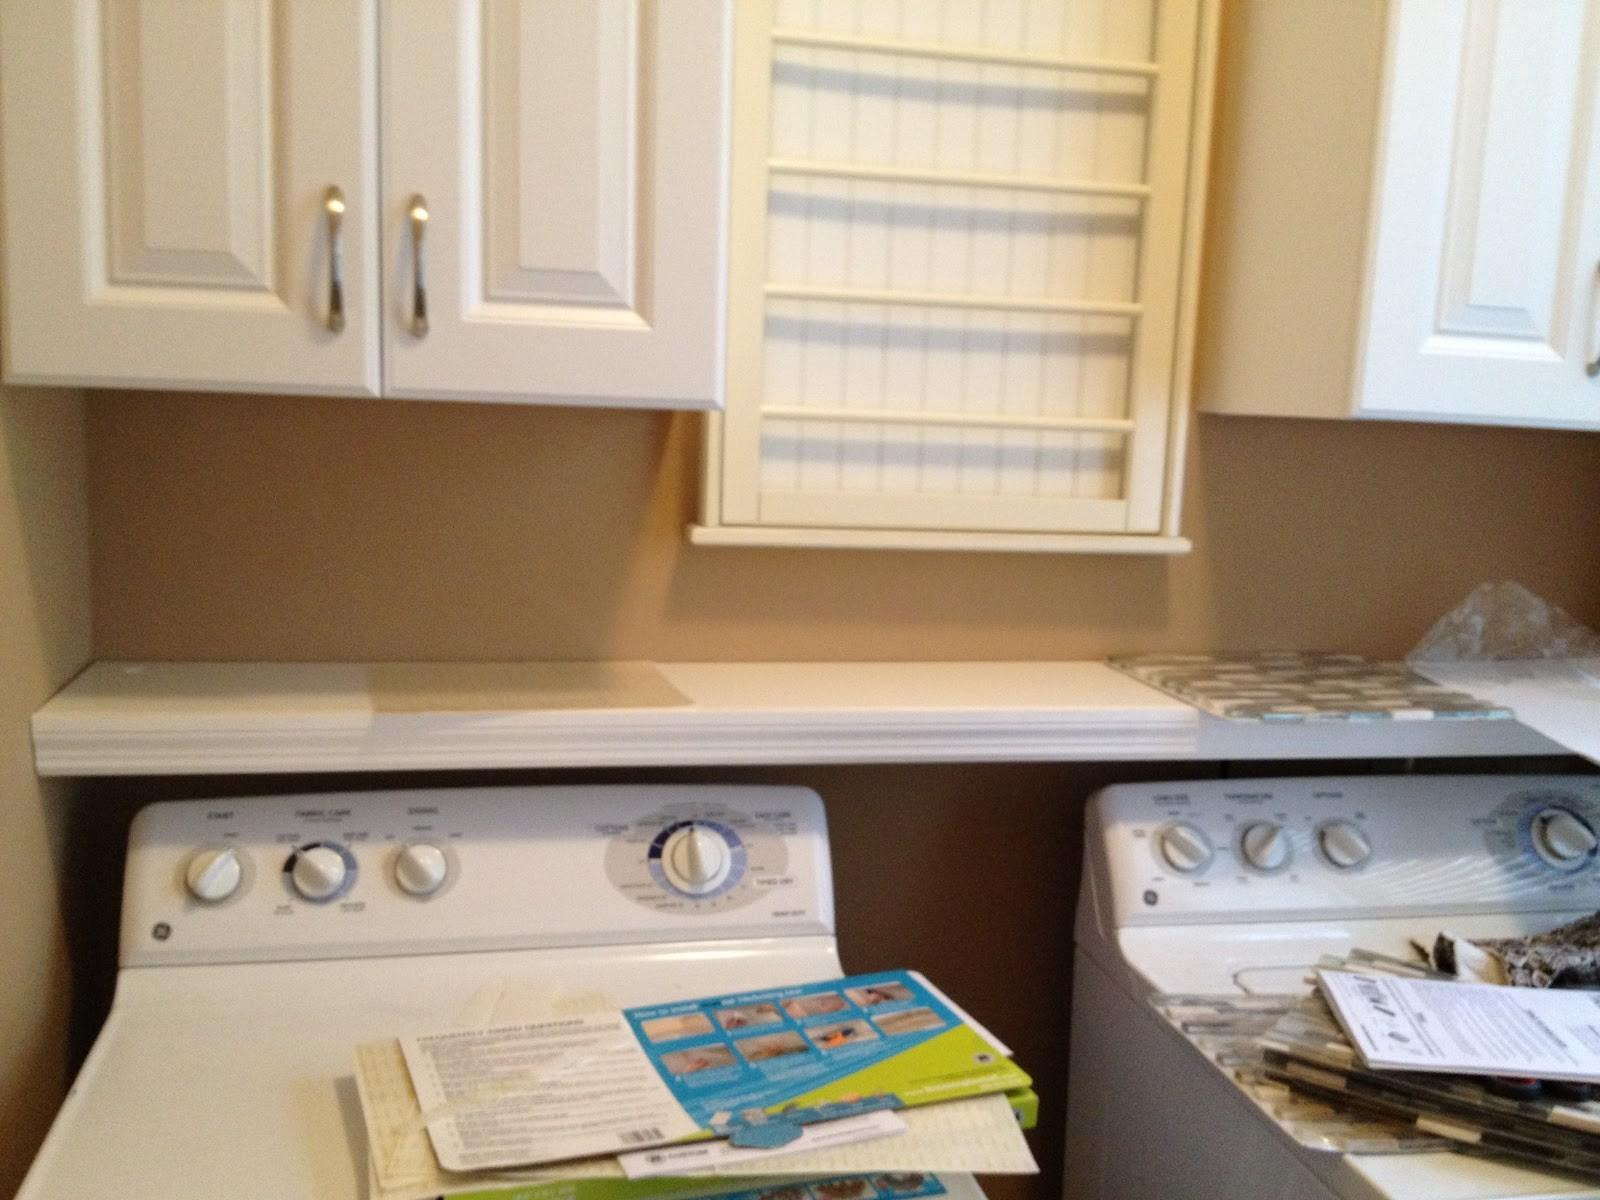 Casalupoli Laundry Room Over Washer Dryer Shelf